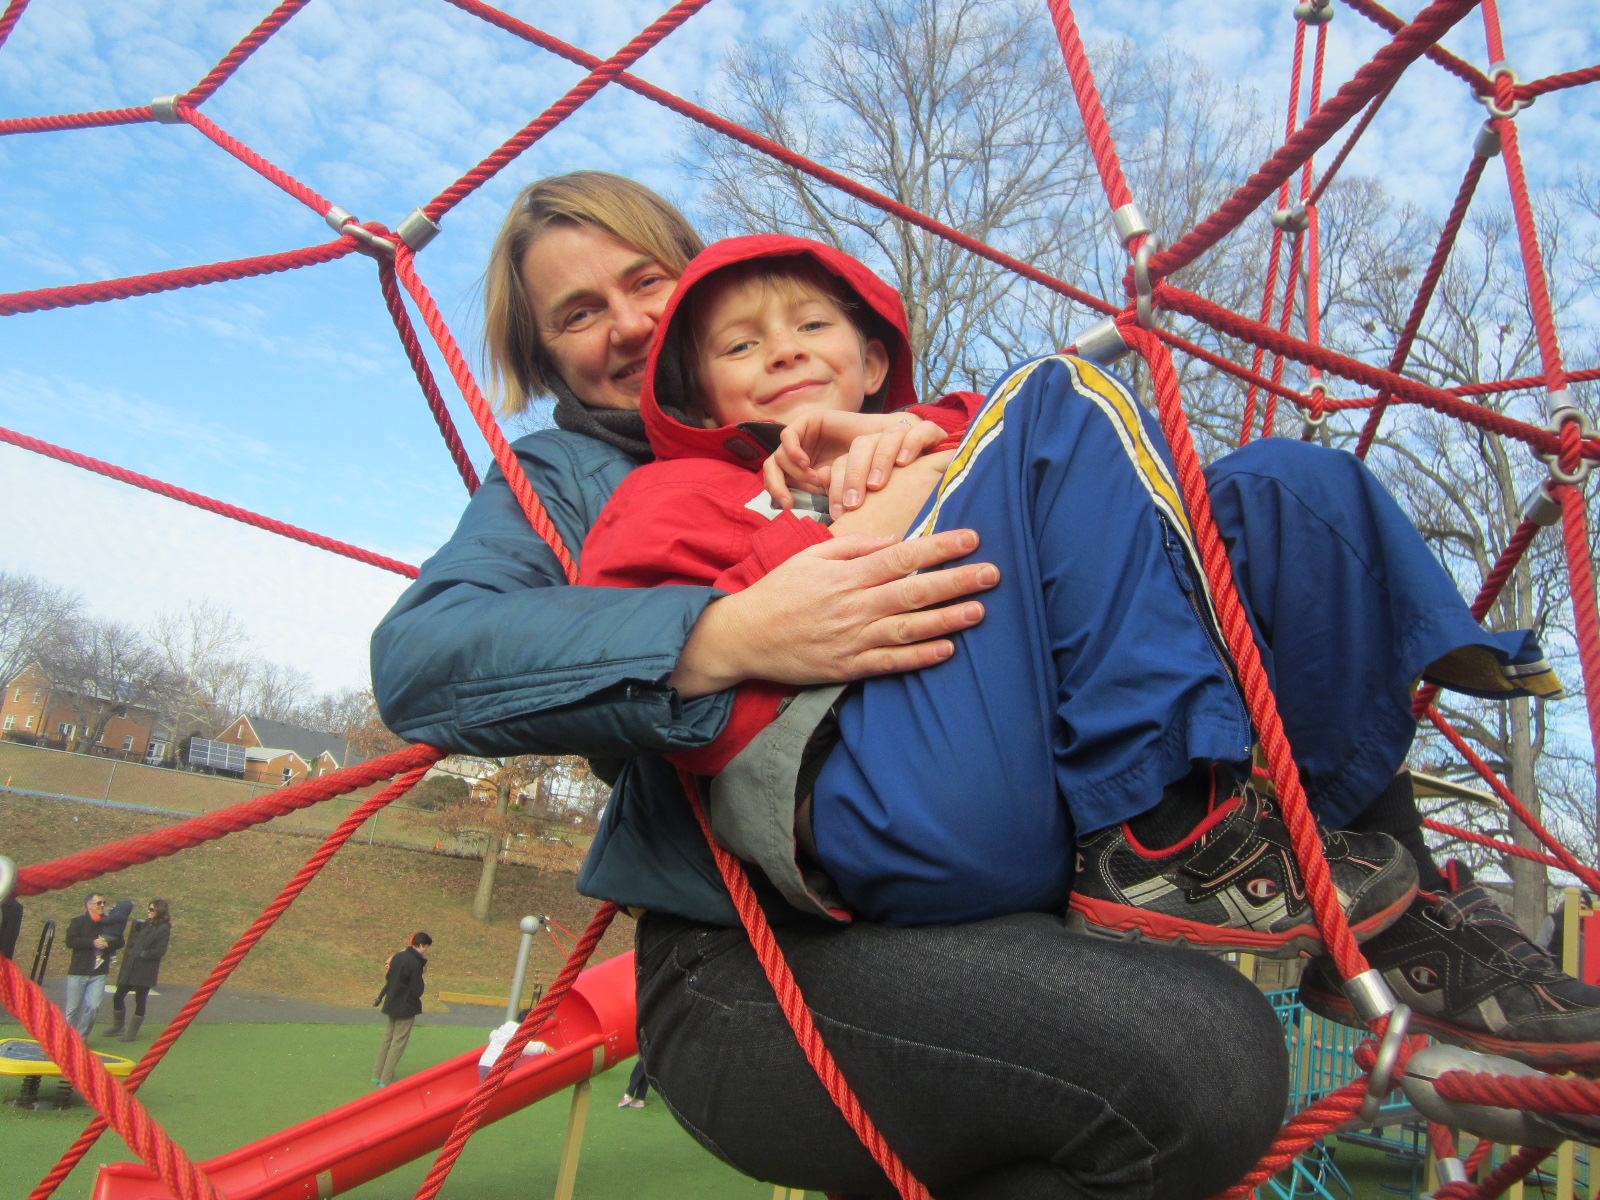 Hanging out at Tuckahoe Park playground in Arlington